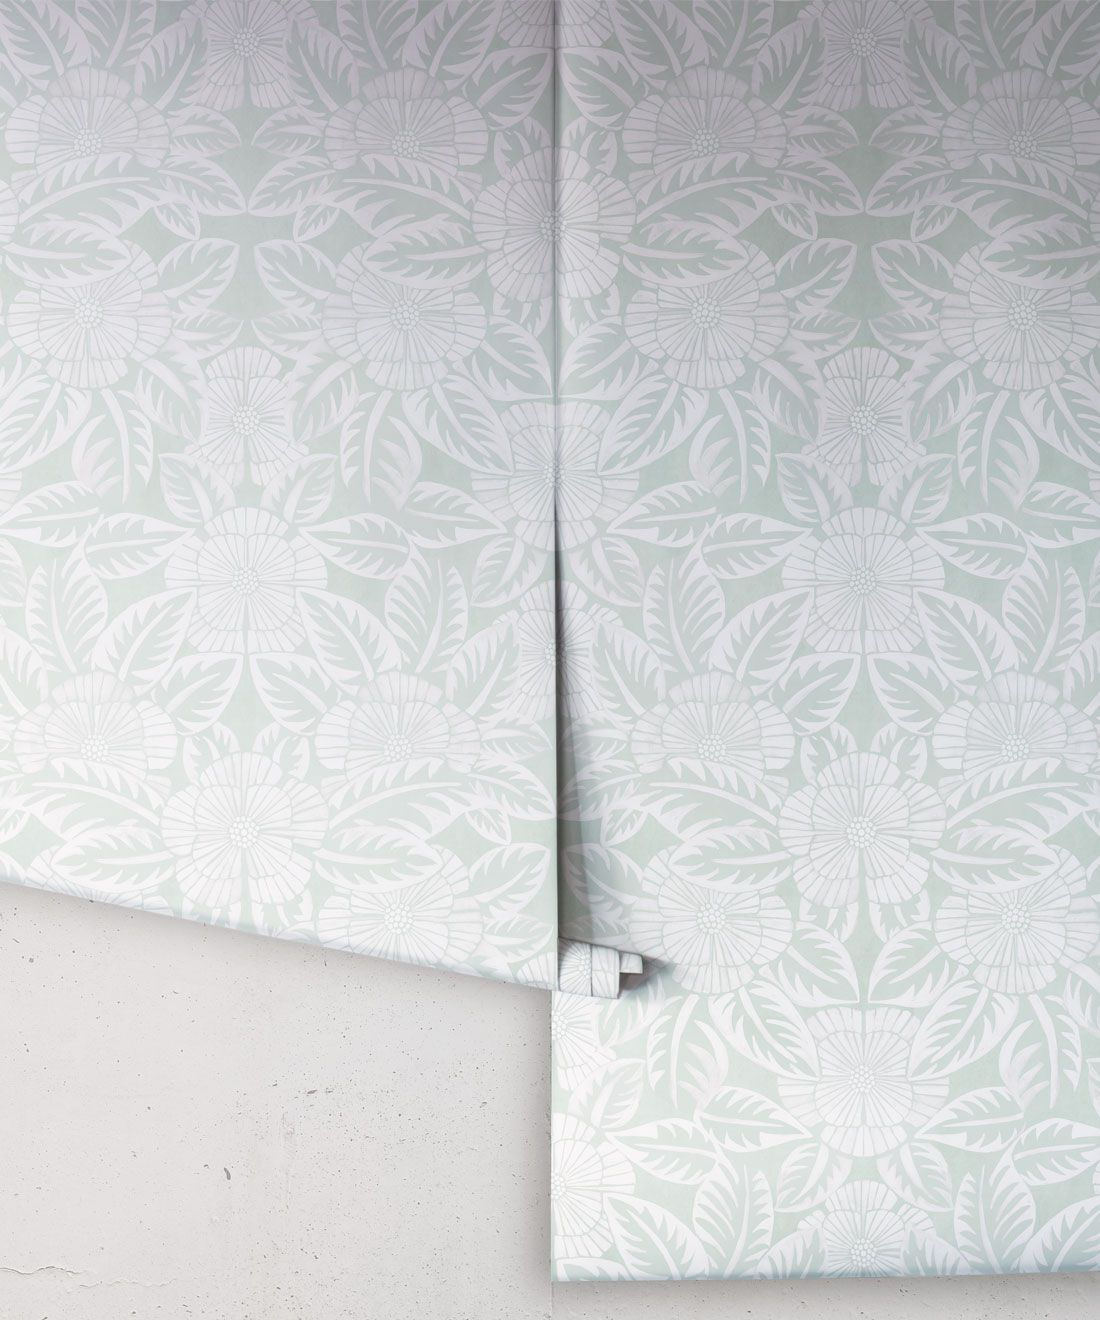 Calcutta Wallpaper • Flower and Leaf Motif Design • Ethnic Wallpaper • Aqua Wallpaper • Rolls